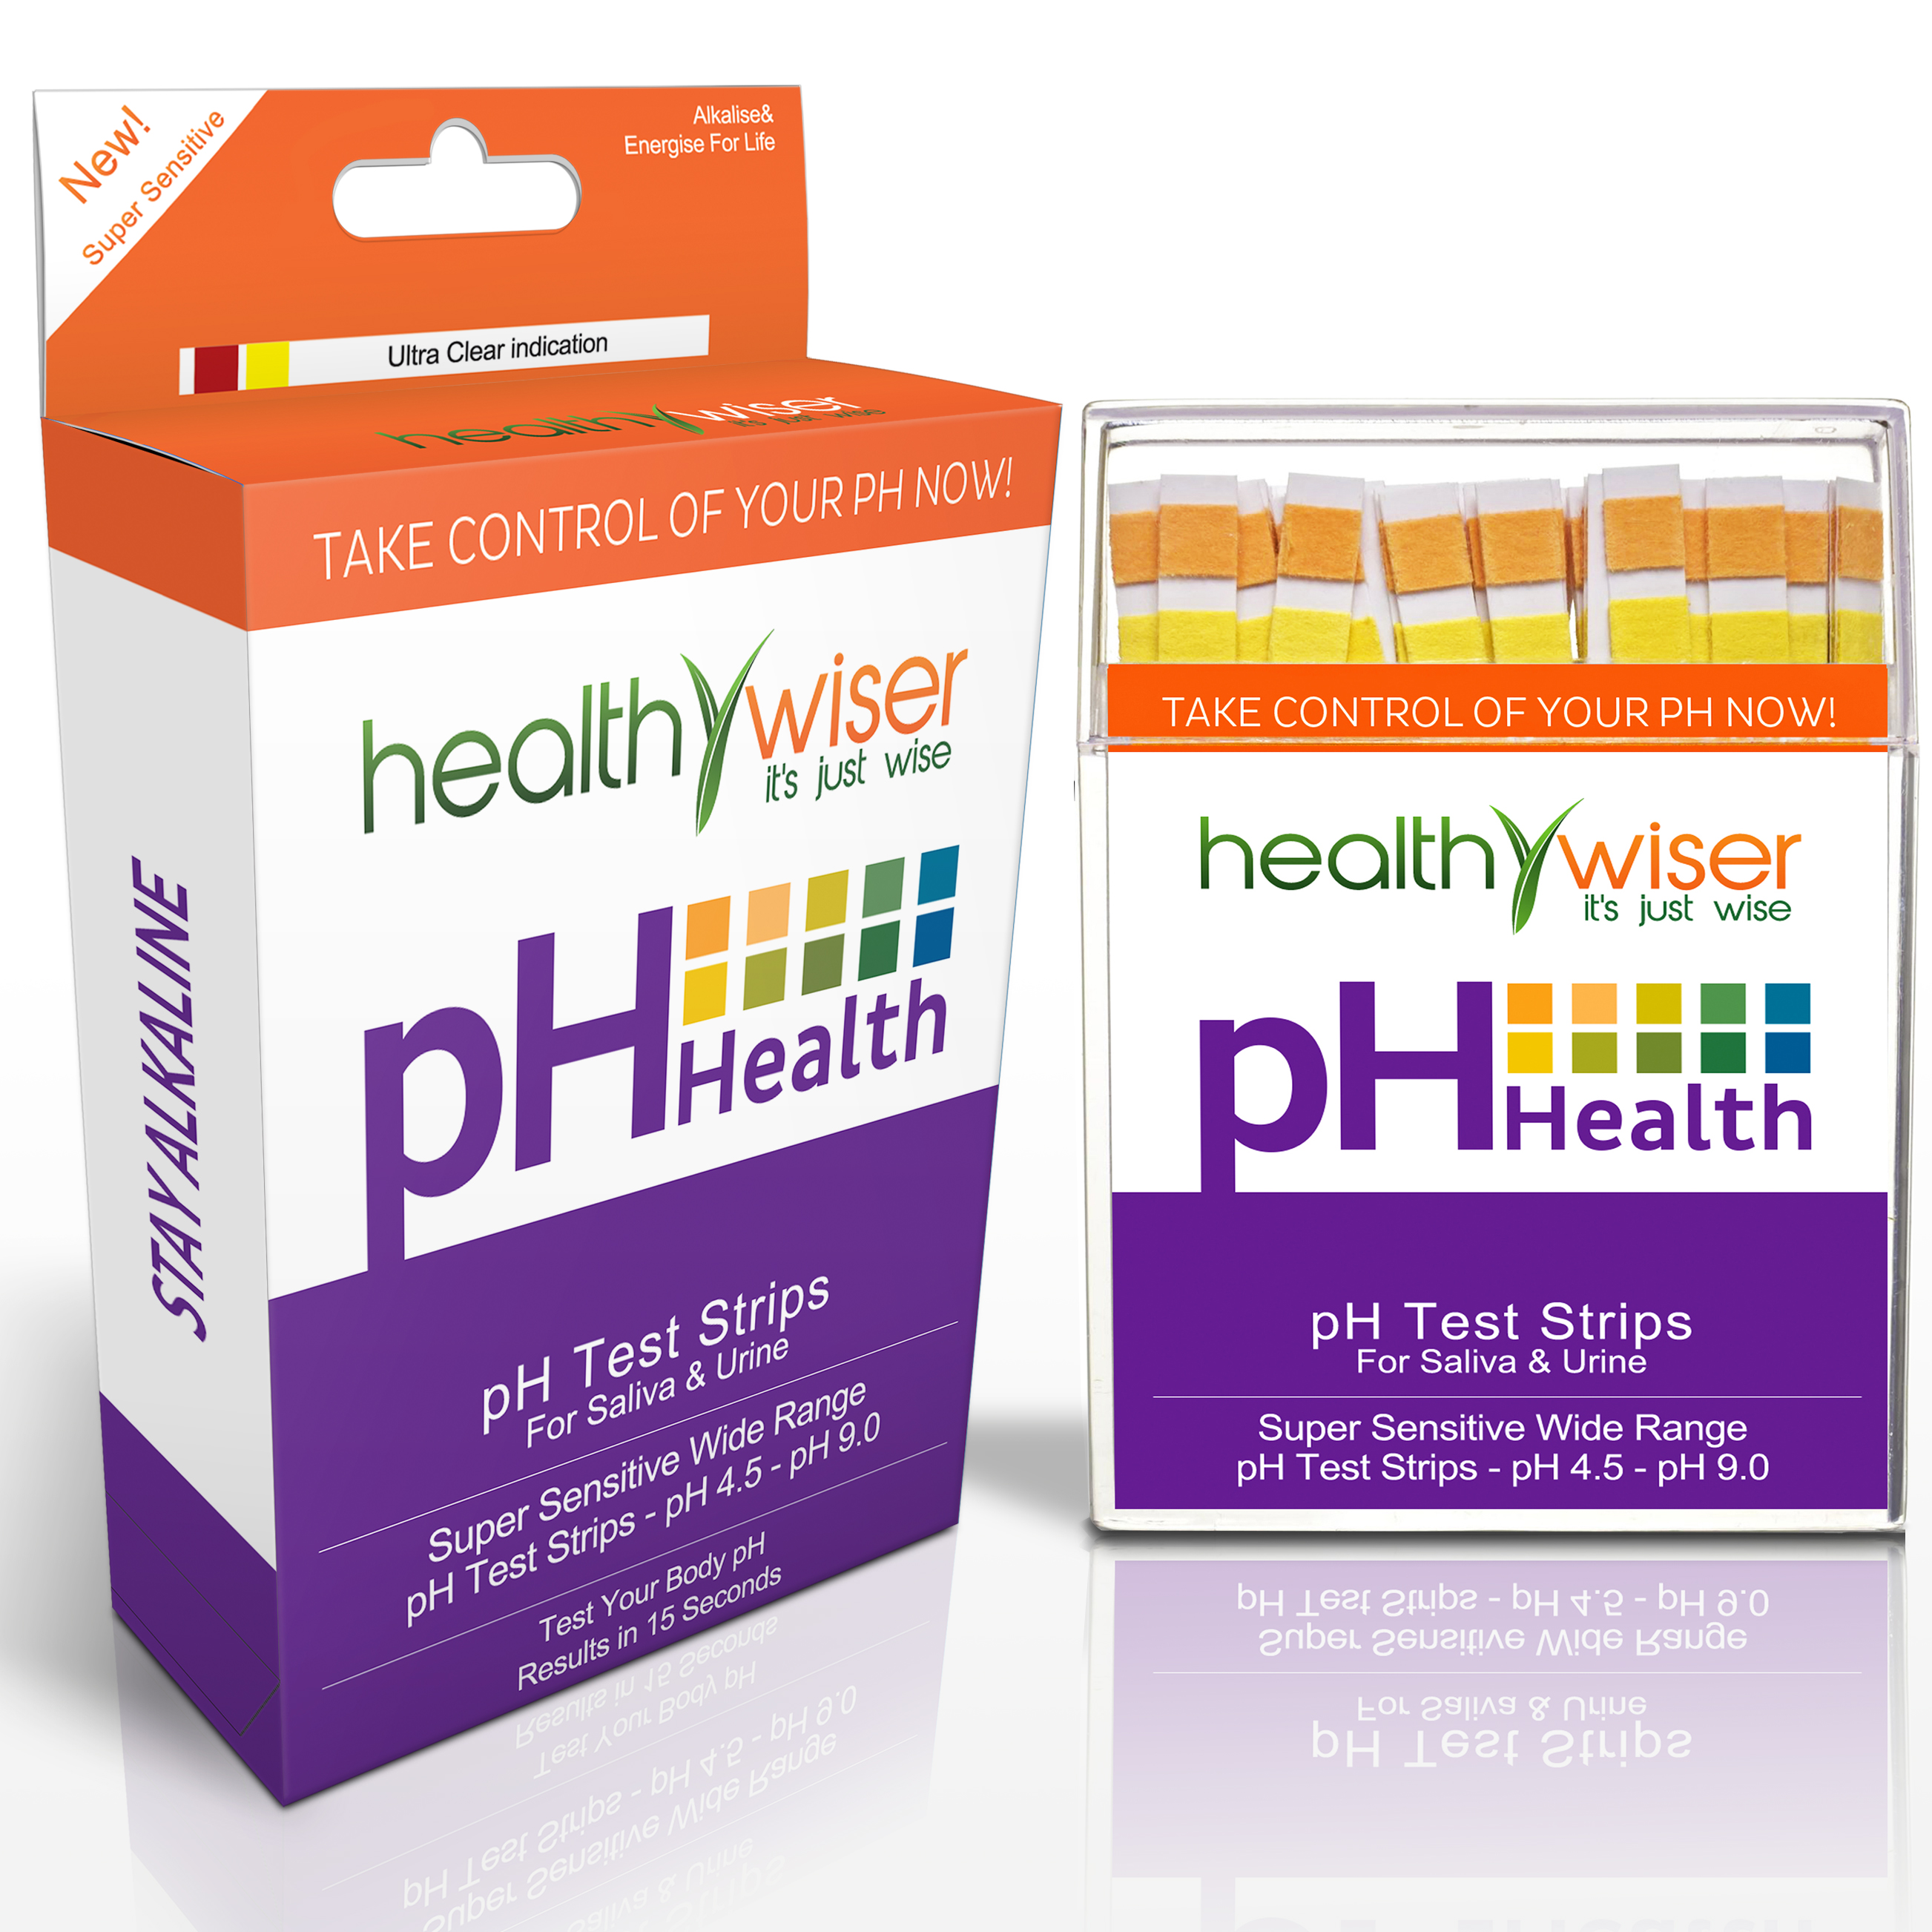 Healthywiser ph test strips review giveaway healthy wiser simply put ph is a measurement of your bodys electrical balance and helps to regulate several bodily functions if your ph varies too much its nvjuhfo Images